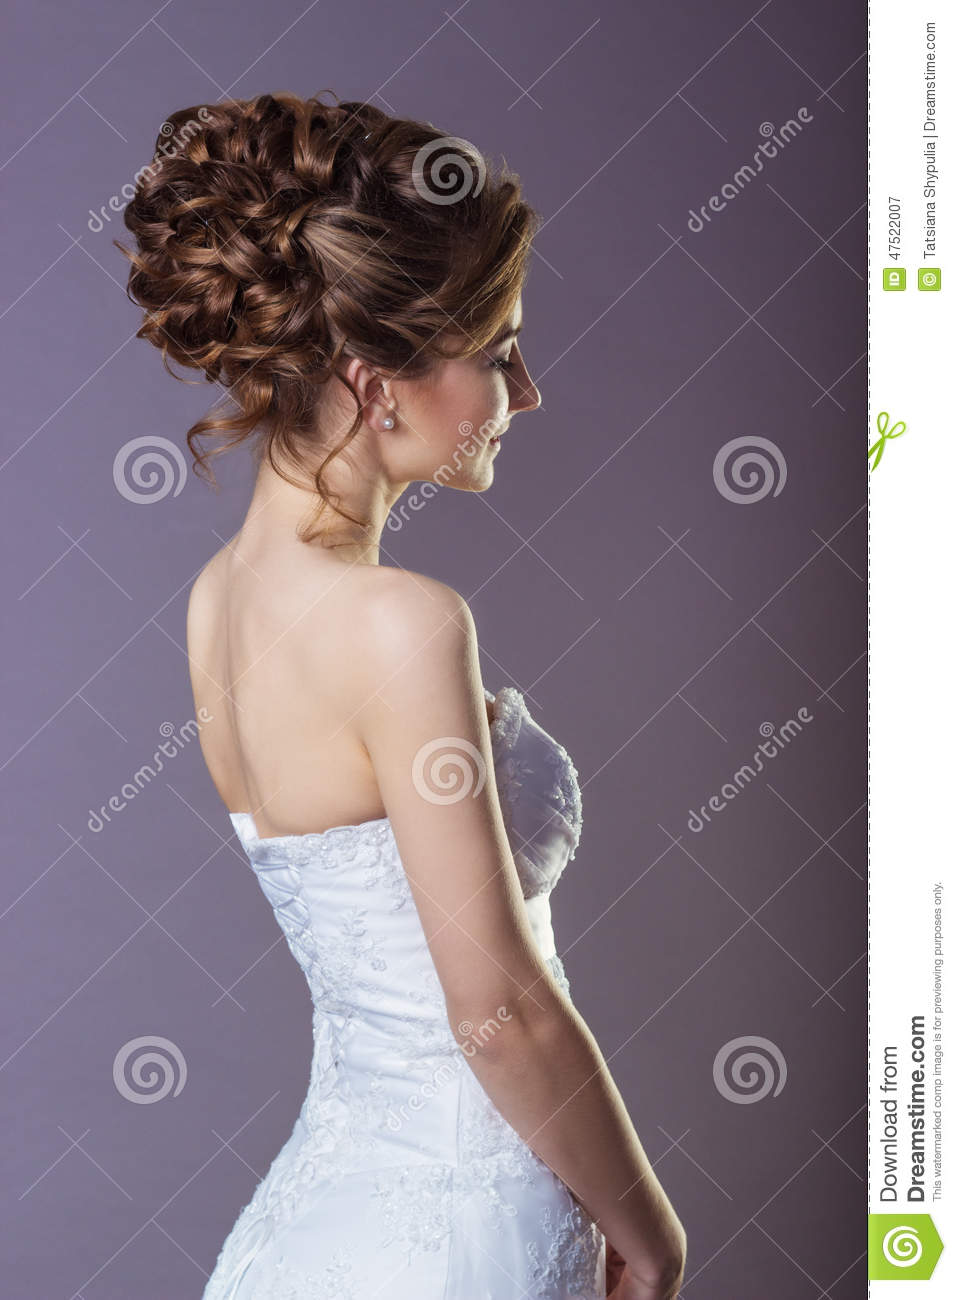 Portrait of a beautiful gentle and elegant girl women bride in a white dress with a beautiful hairstyle and makeup